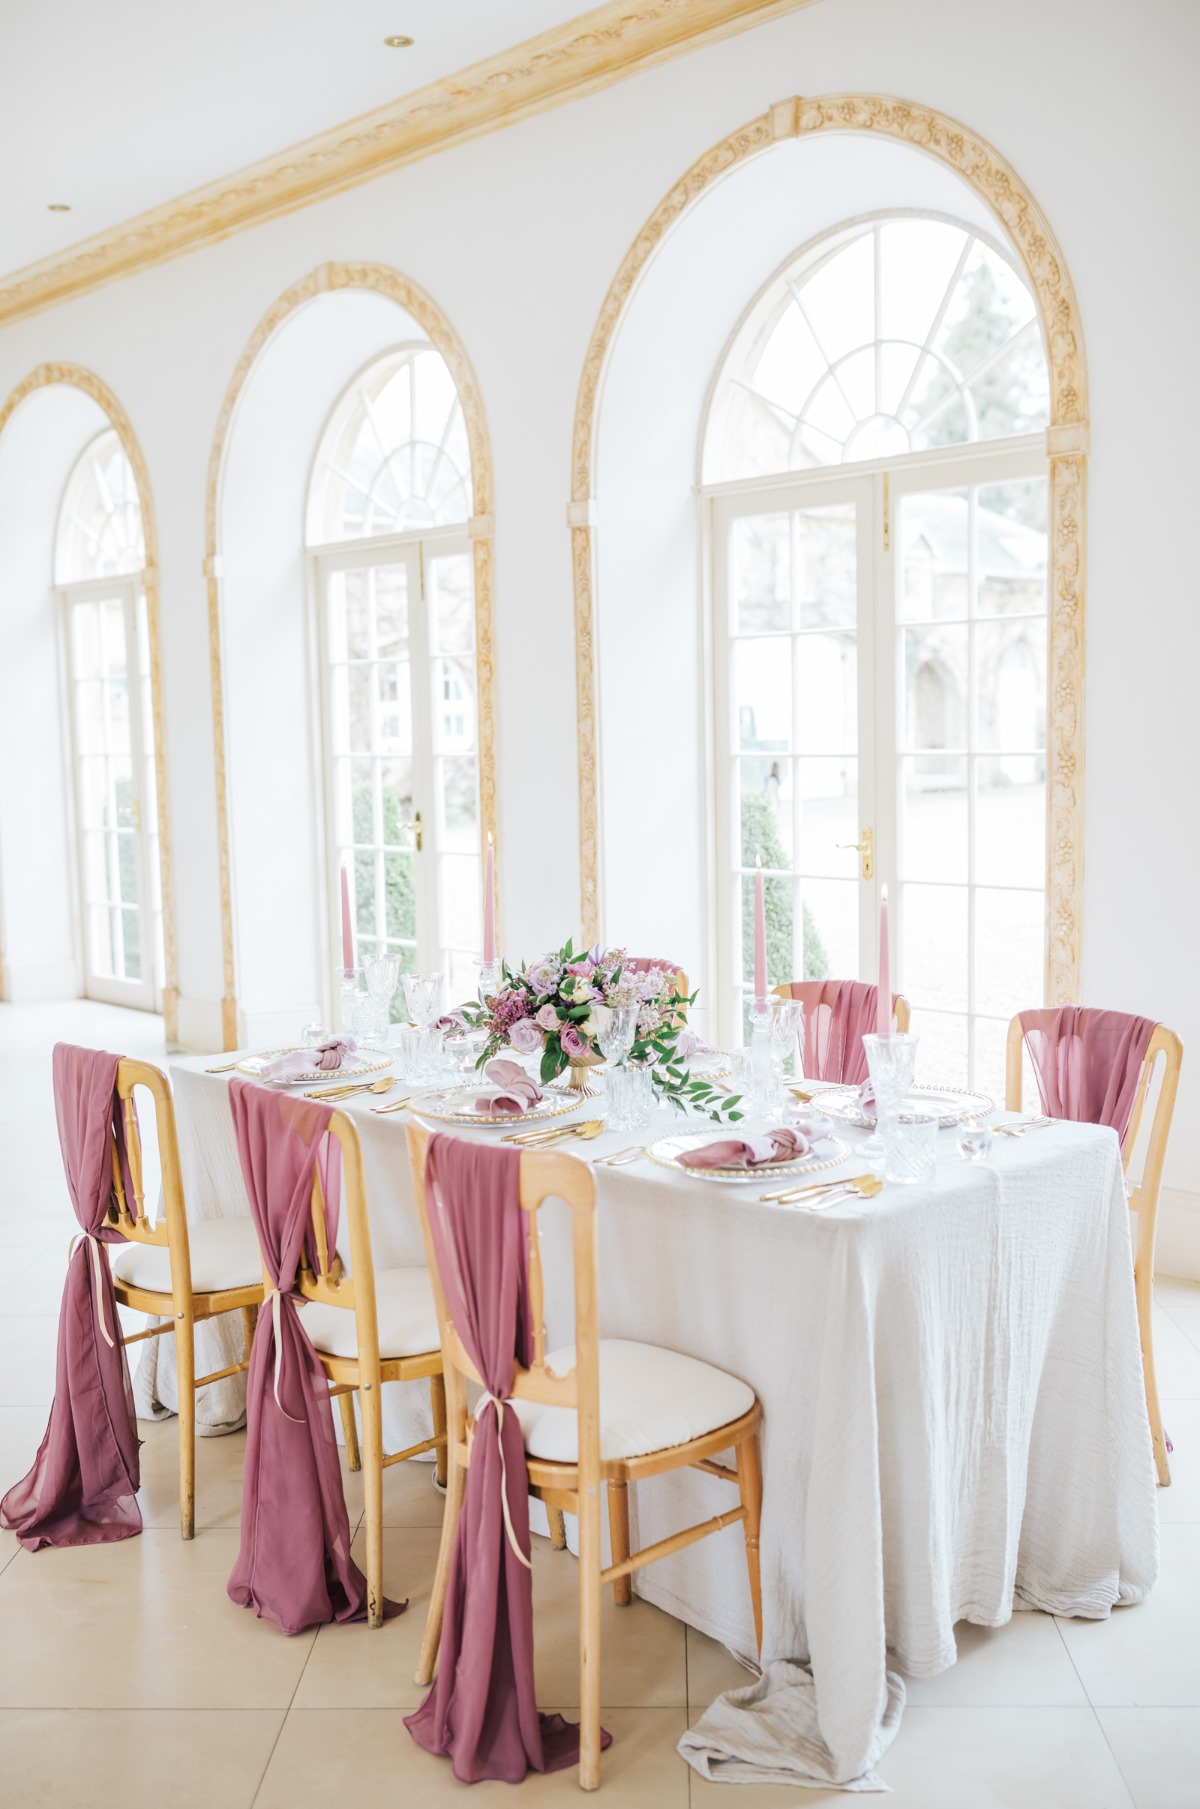 blush and white wedding table decor ideas